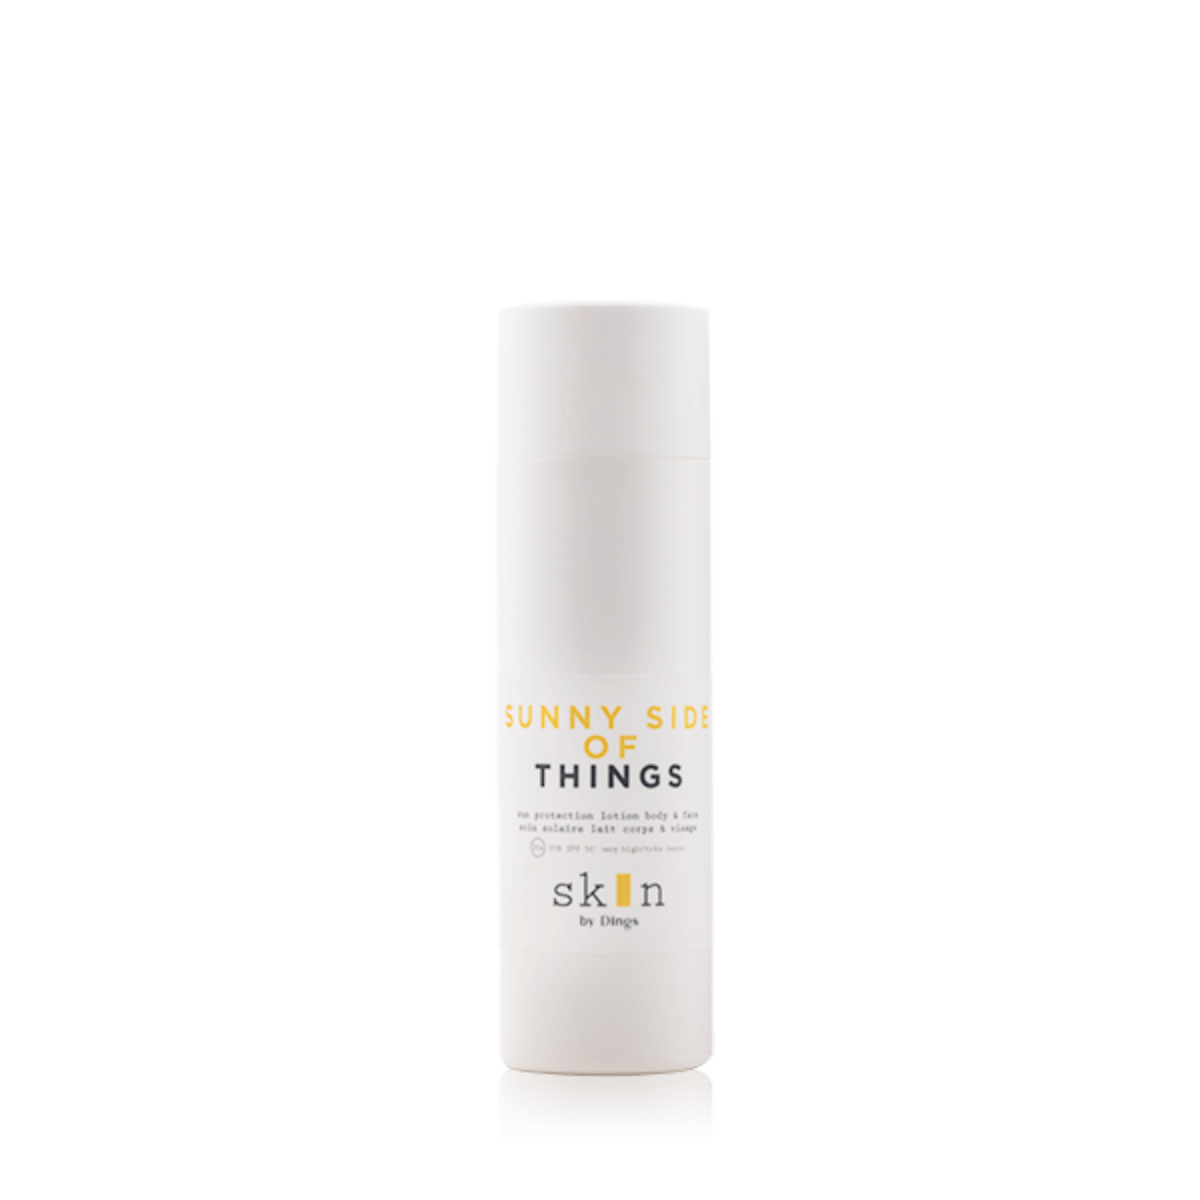 Sunny Side Of Things: Sun protection body & face lotion SPF 50+ - The Natural Beauty Club